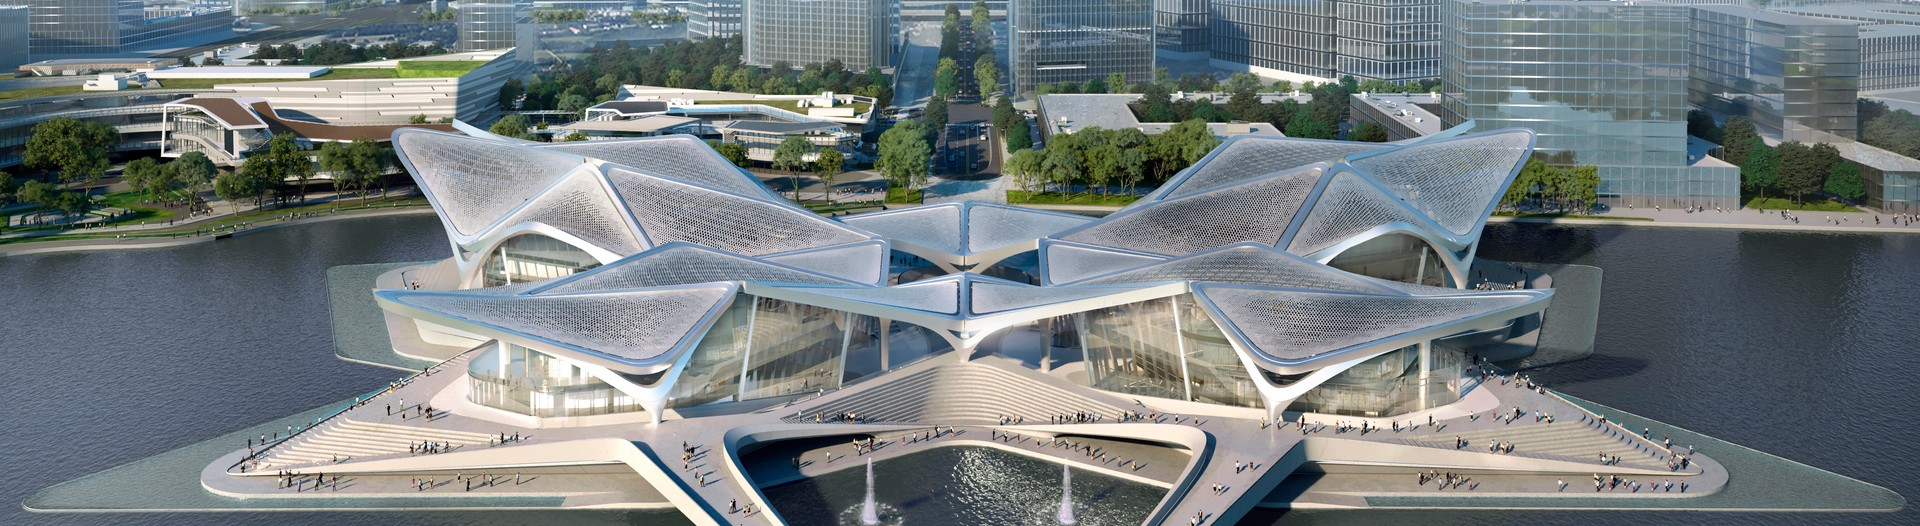 Outstanding-Cultural-Center-in-Southern-China-by-Zaha-Hadid-Architects.jpg